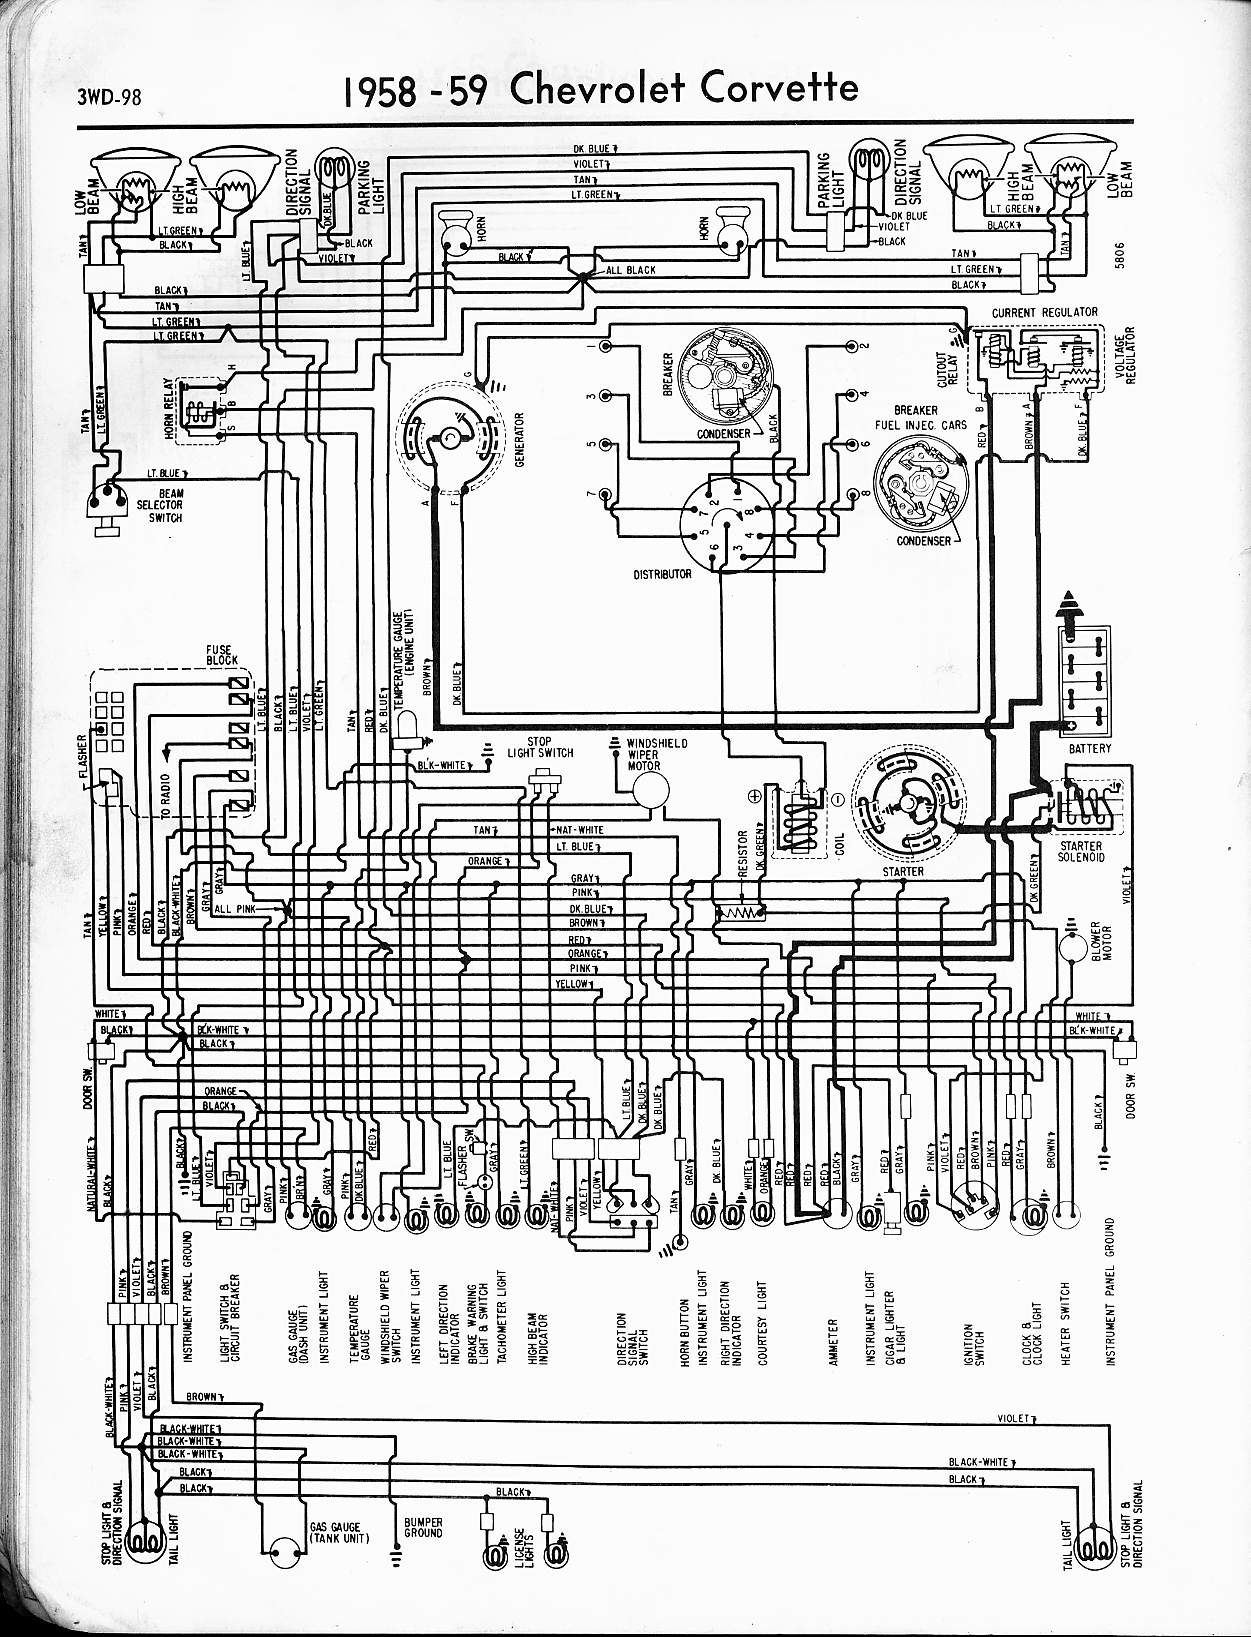 1967 Corvette Dash Wiring Schematic Guide And Troubleshooting Of 1984 Camaro Ignition Diagram 1958 Temp Third Level Rh 5 13 14 Jacobwinterstein Com